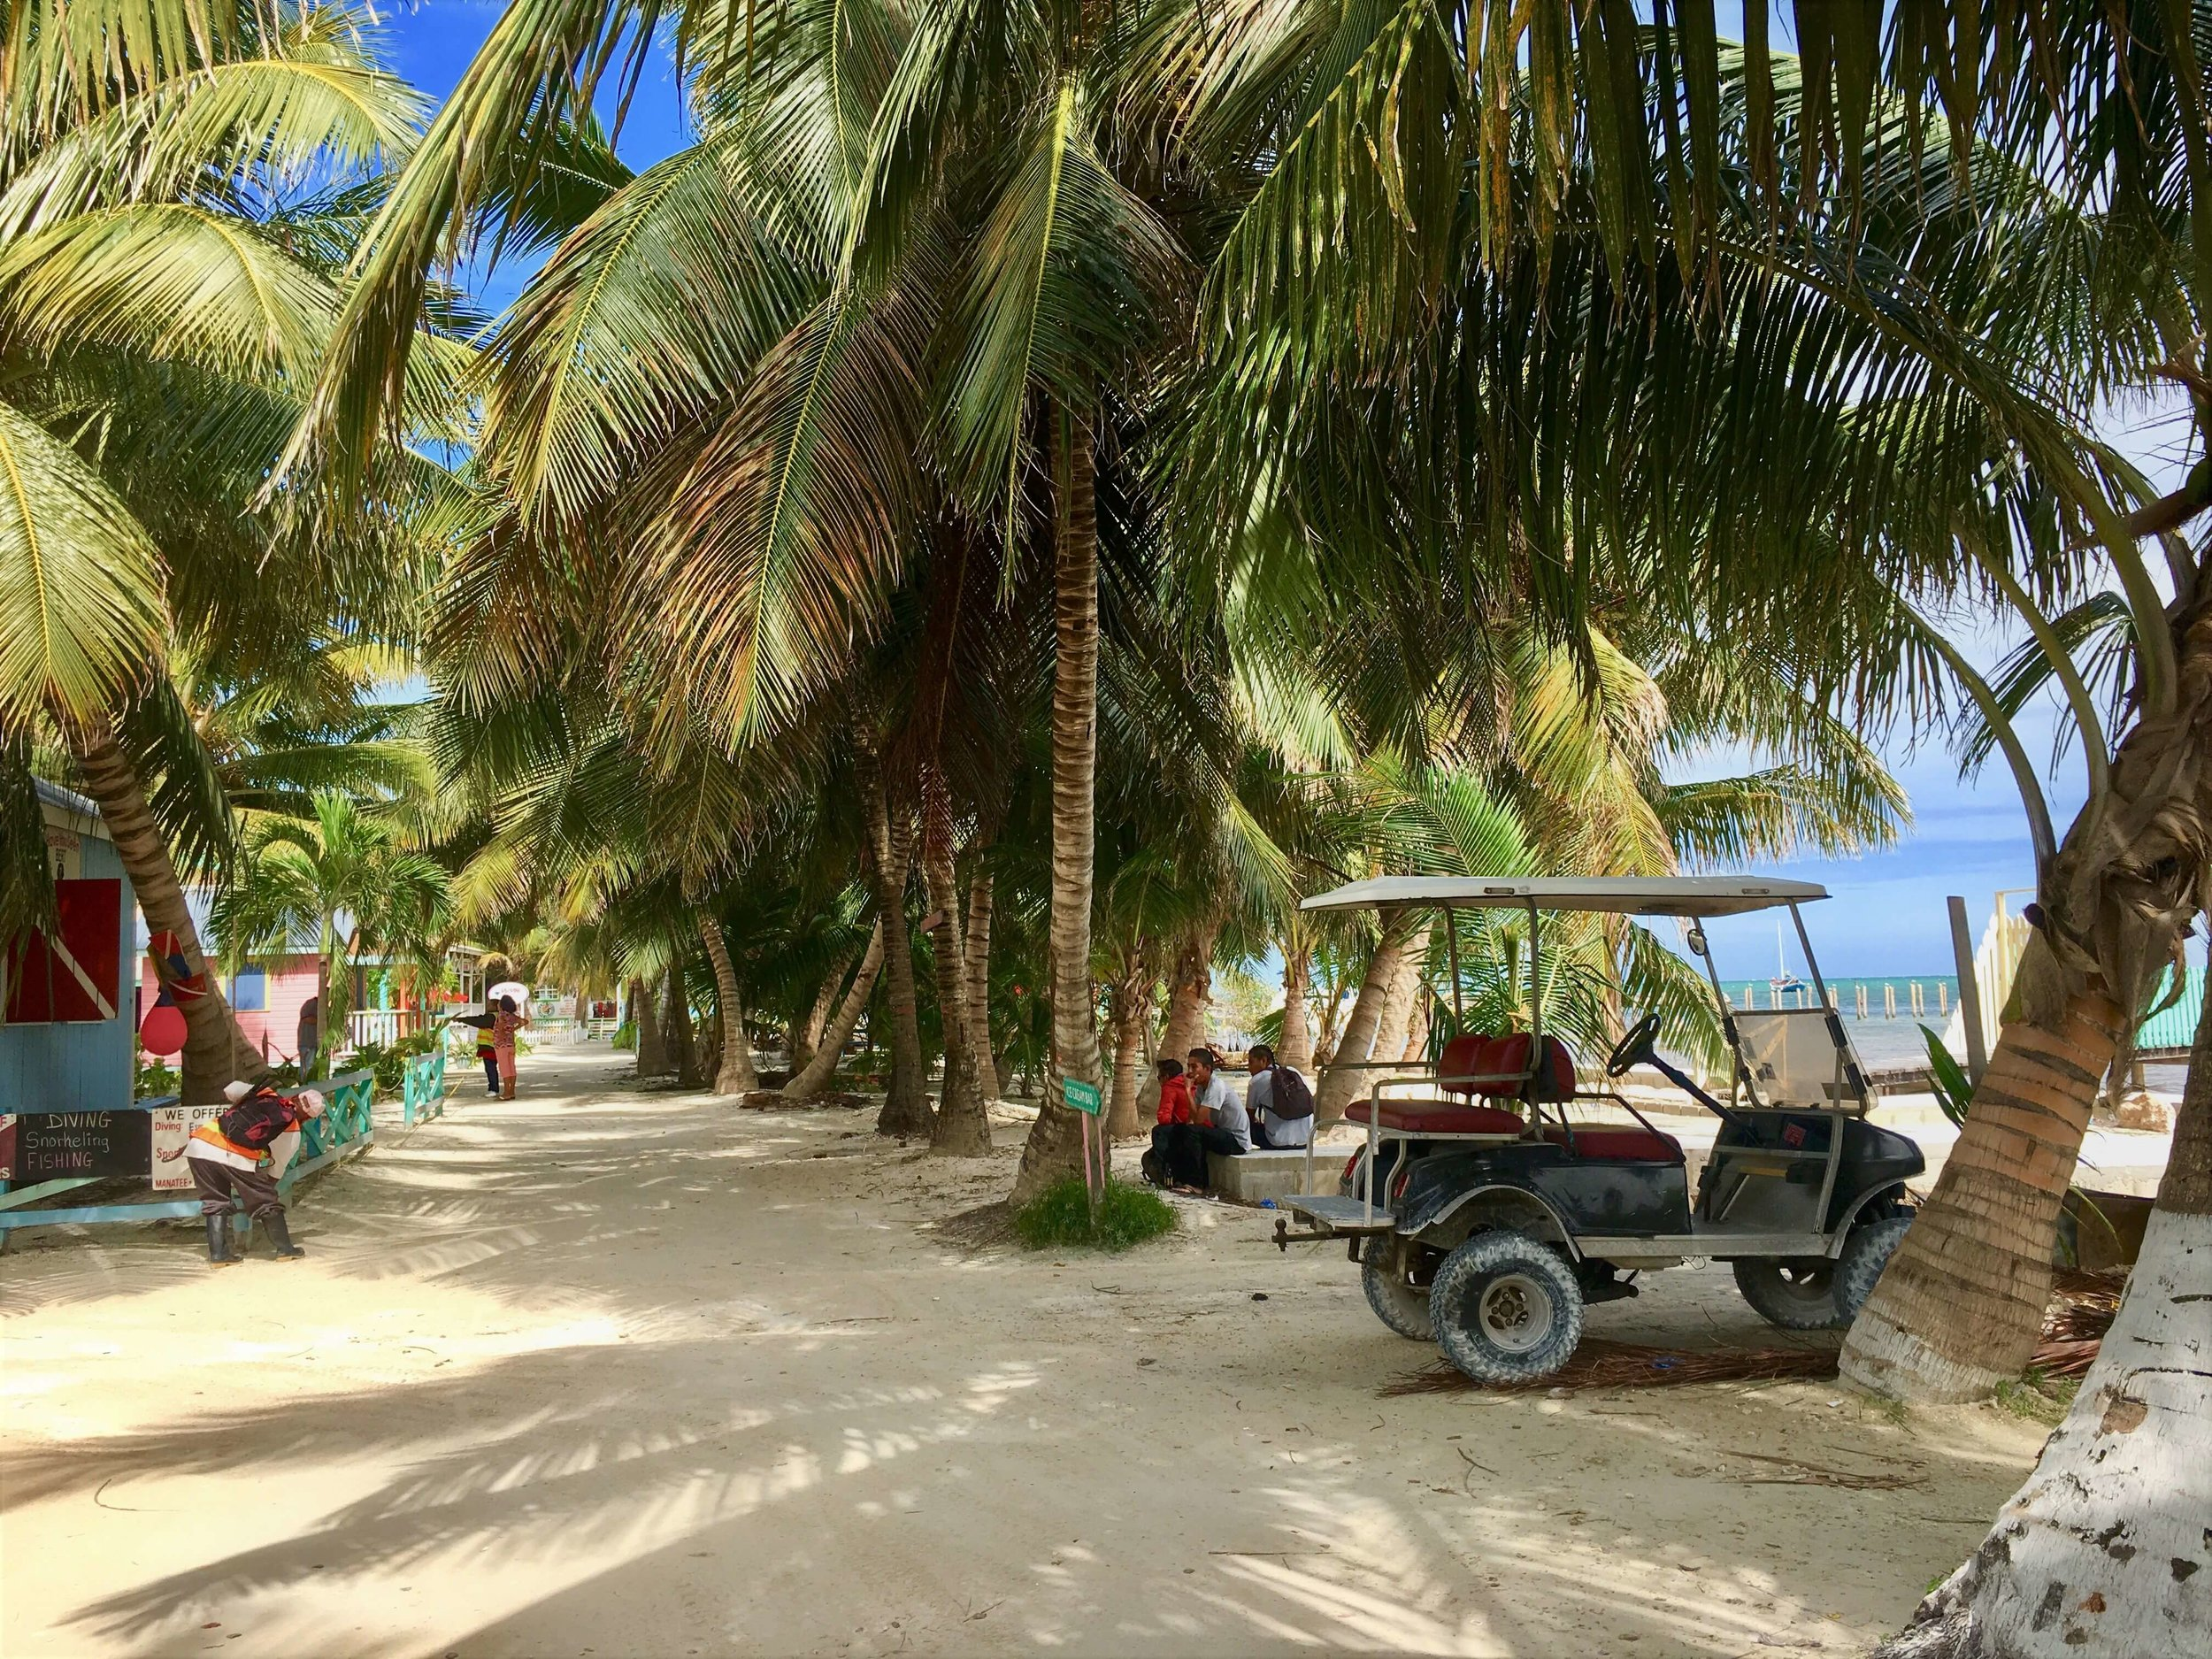 The chill golf cart life on San Pedro (Ambergris Caye, Belize).